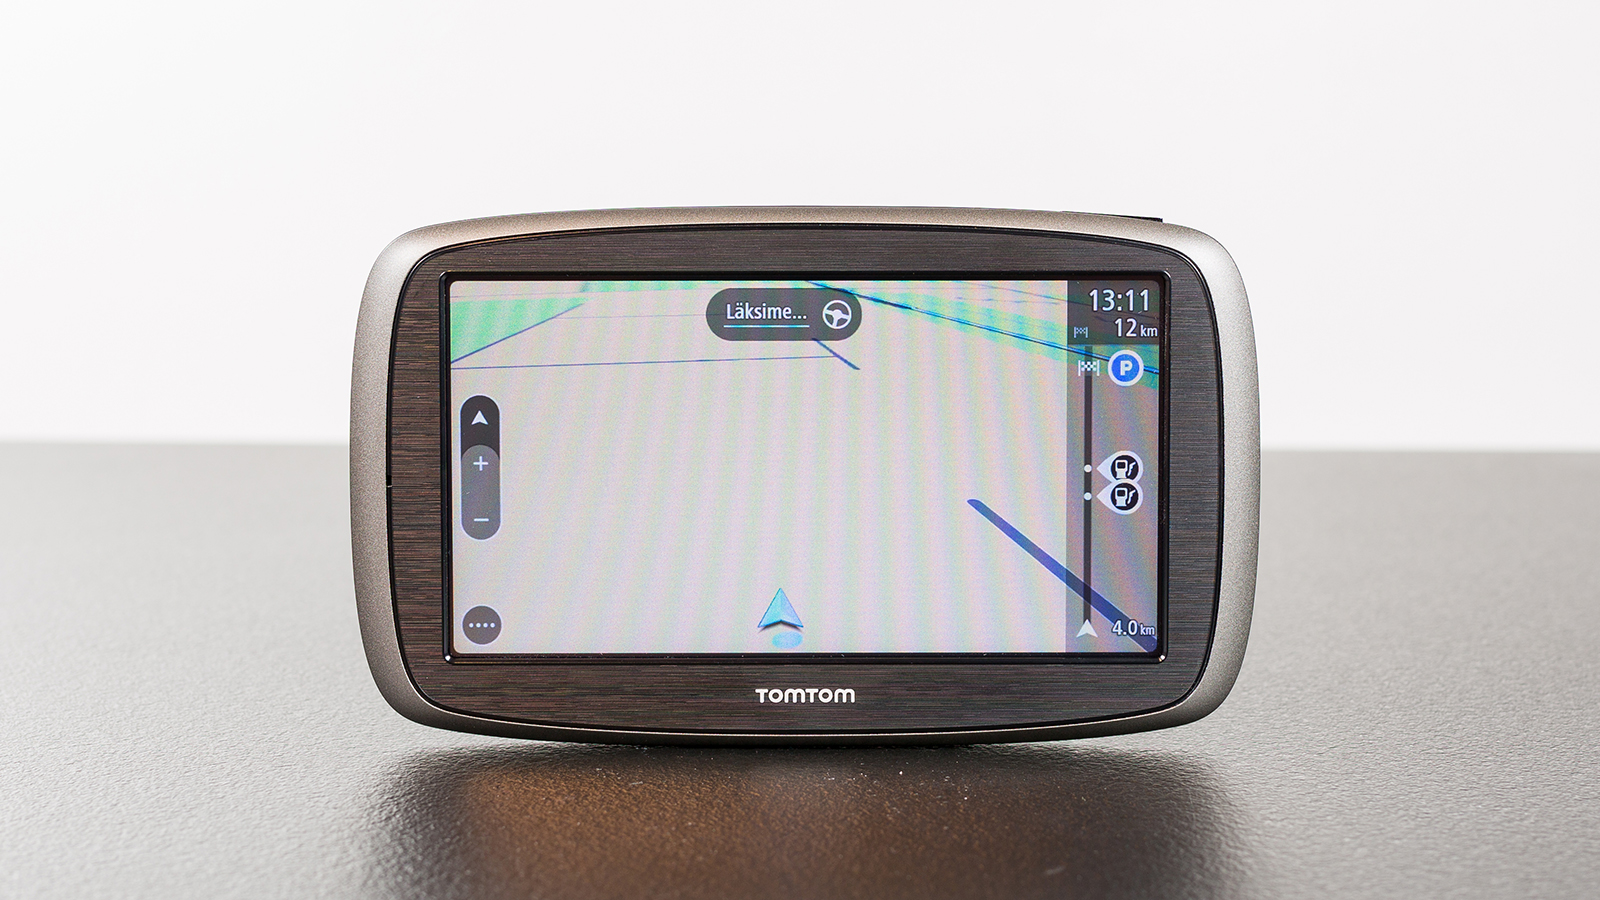 tomtom go 61 naviseade teab millist teed valida digitest. Black Bedroom Furniture Sets. Home Design Ideas